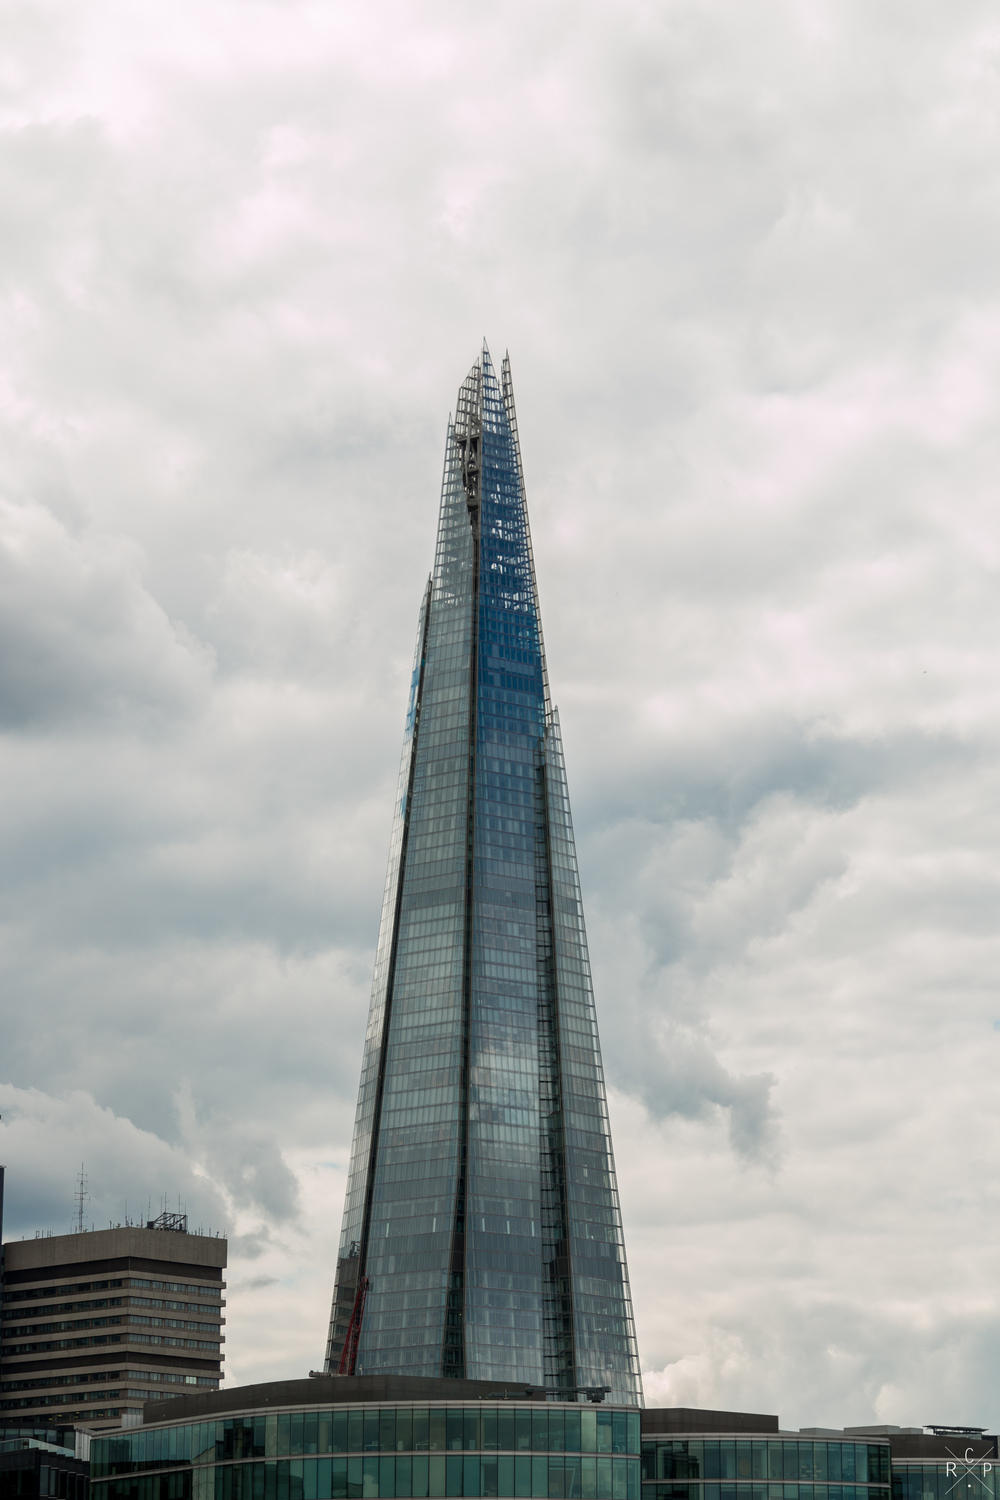 The Shard - Southbank, London, England 31/07/2016